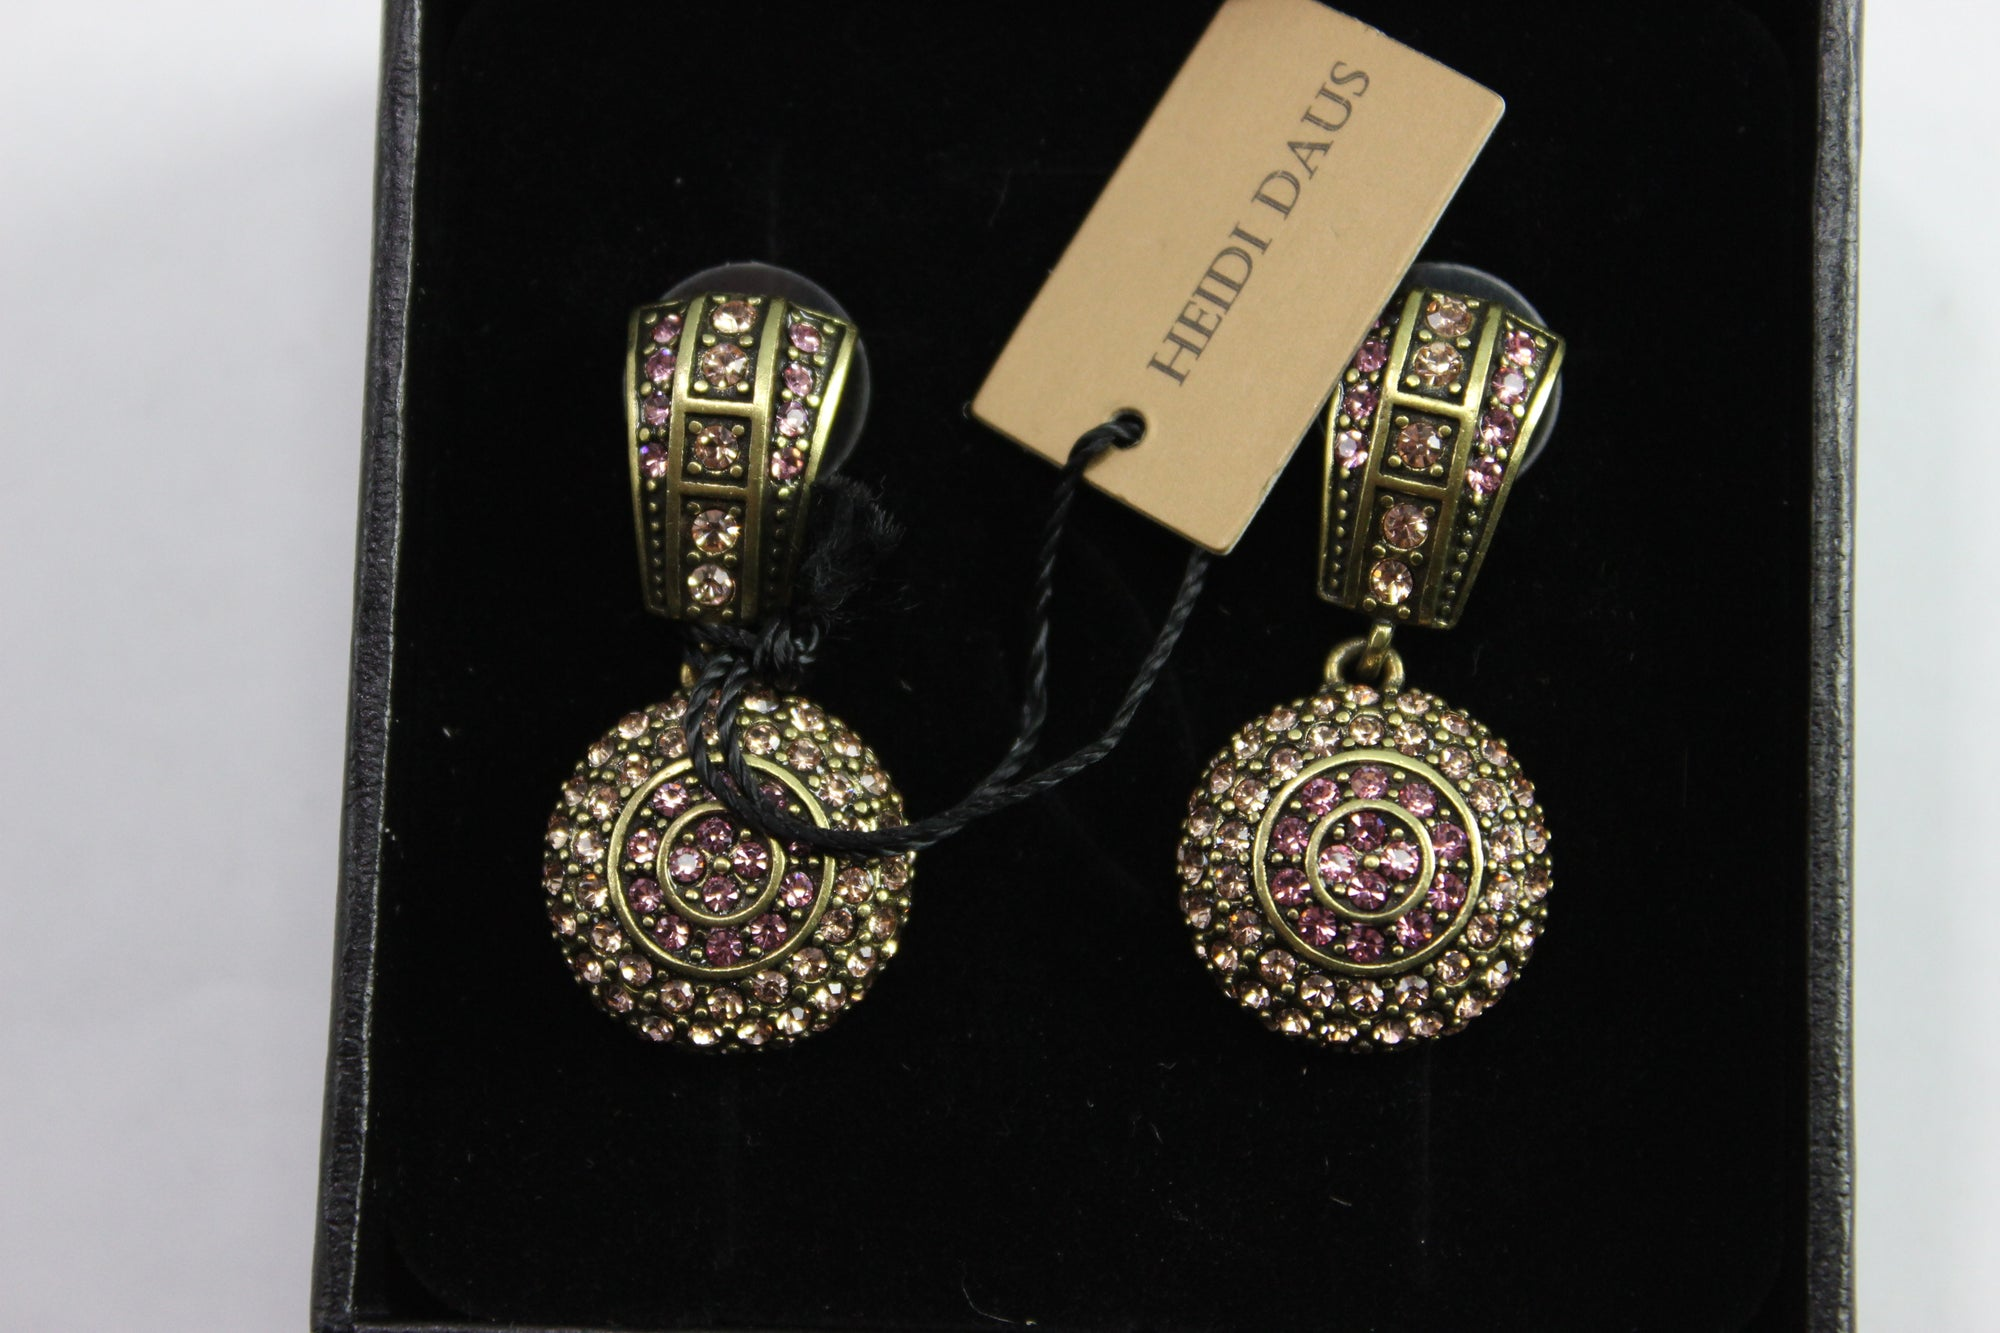 NEW Heidi Daus Pink Crystal Accented Fashion Clip On Earrings NIB